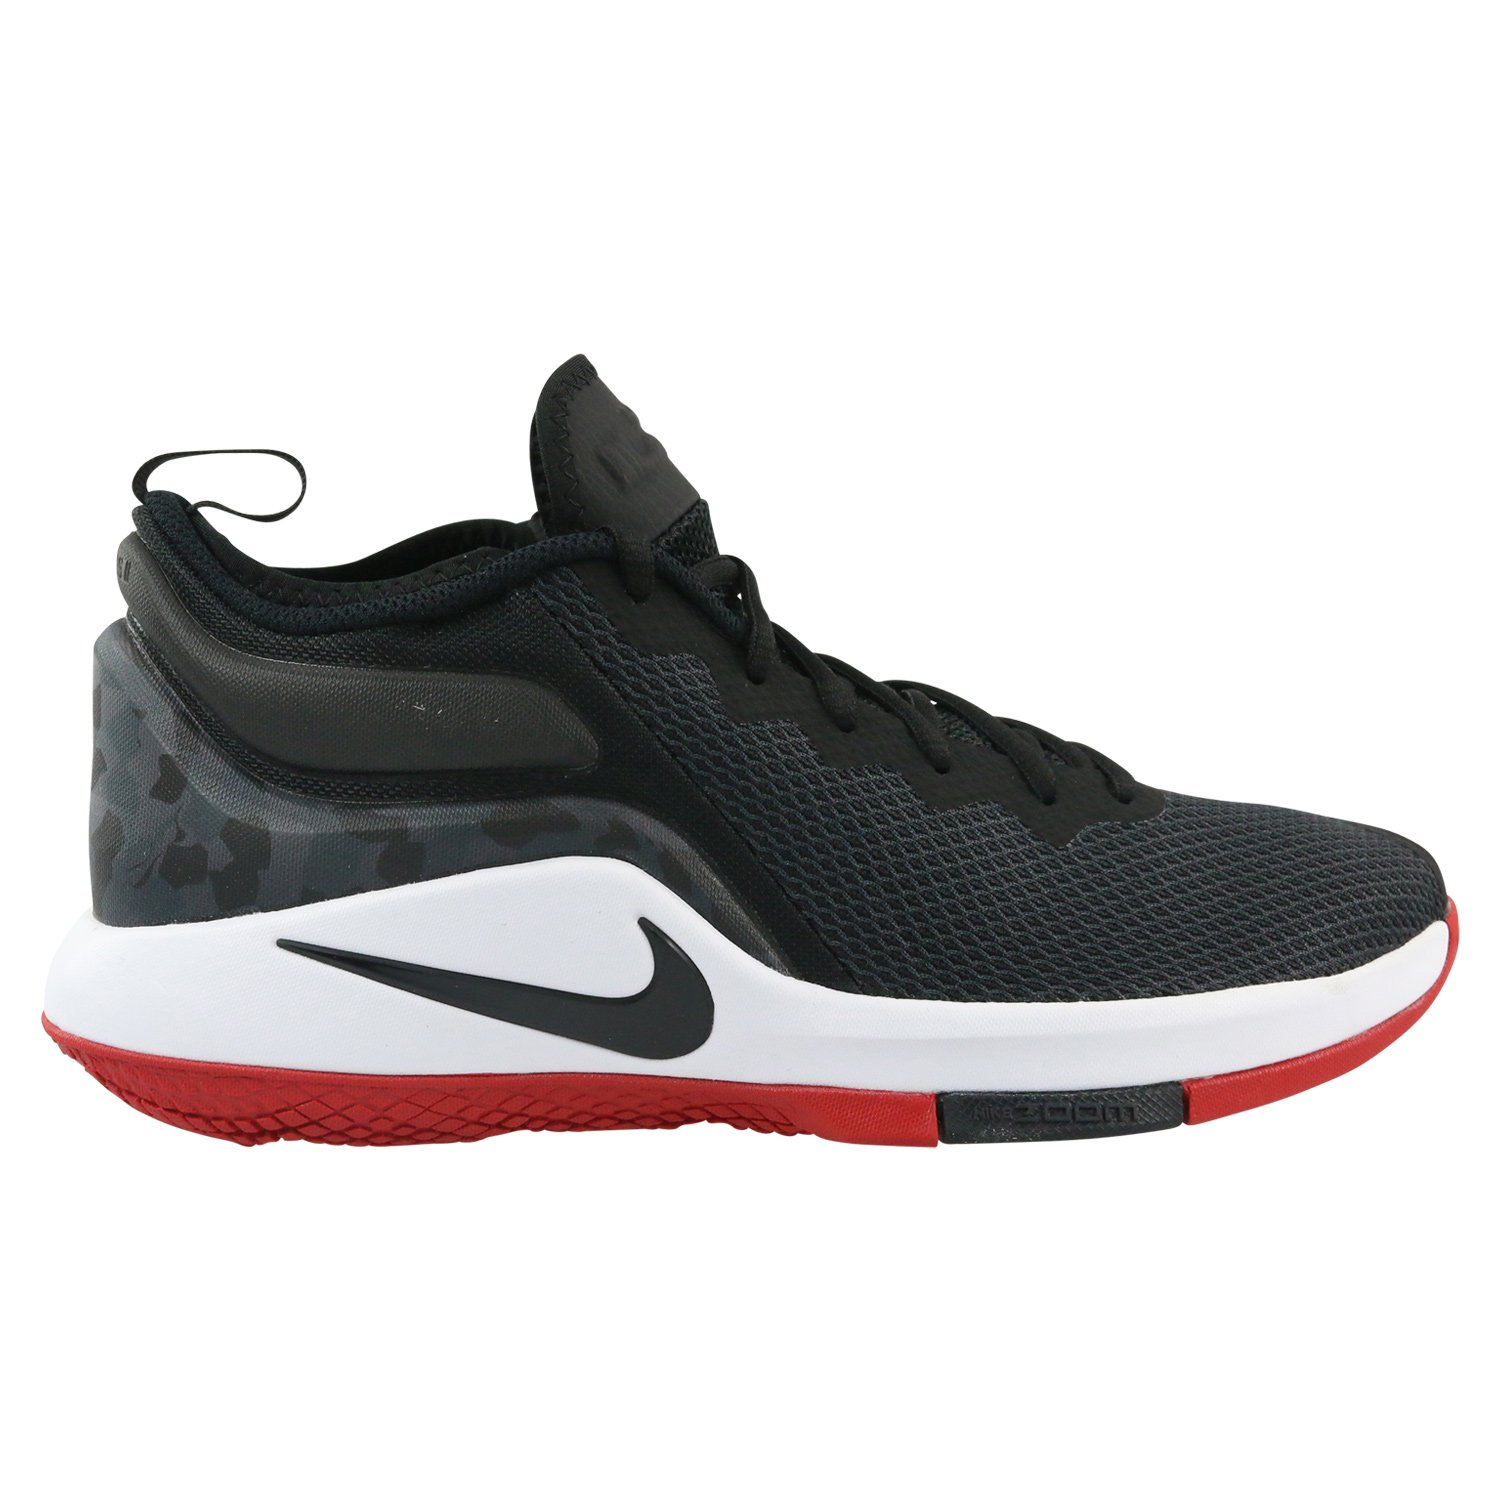 premium selection a36ee 1eb0a Galleon - NIKE Men s Lebron Witness II Basketball Shoe Black White-Gym Red ( 12)